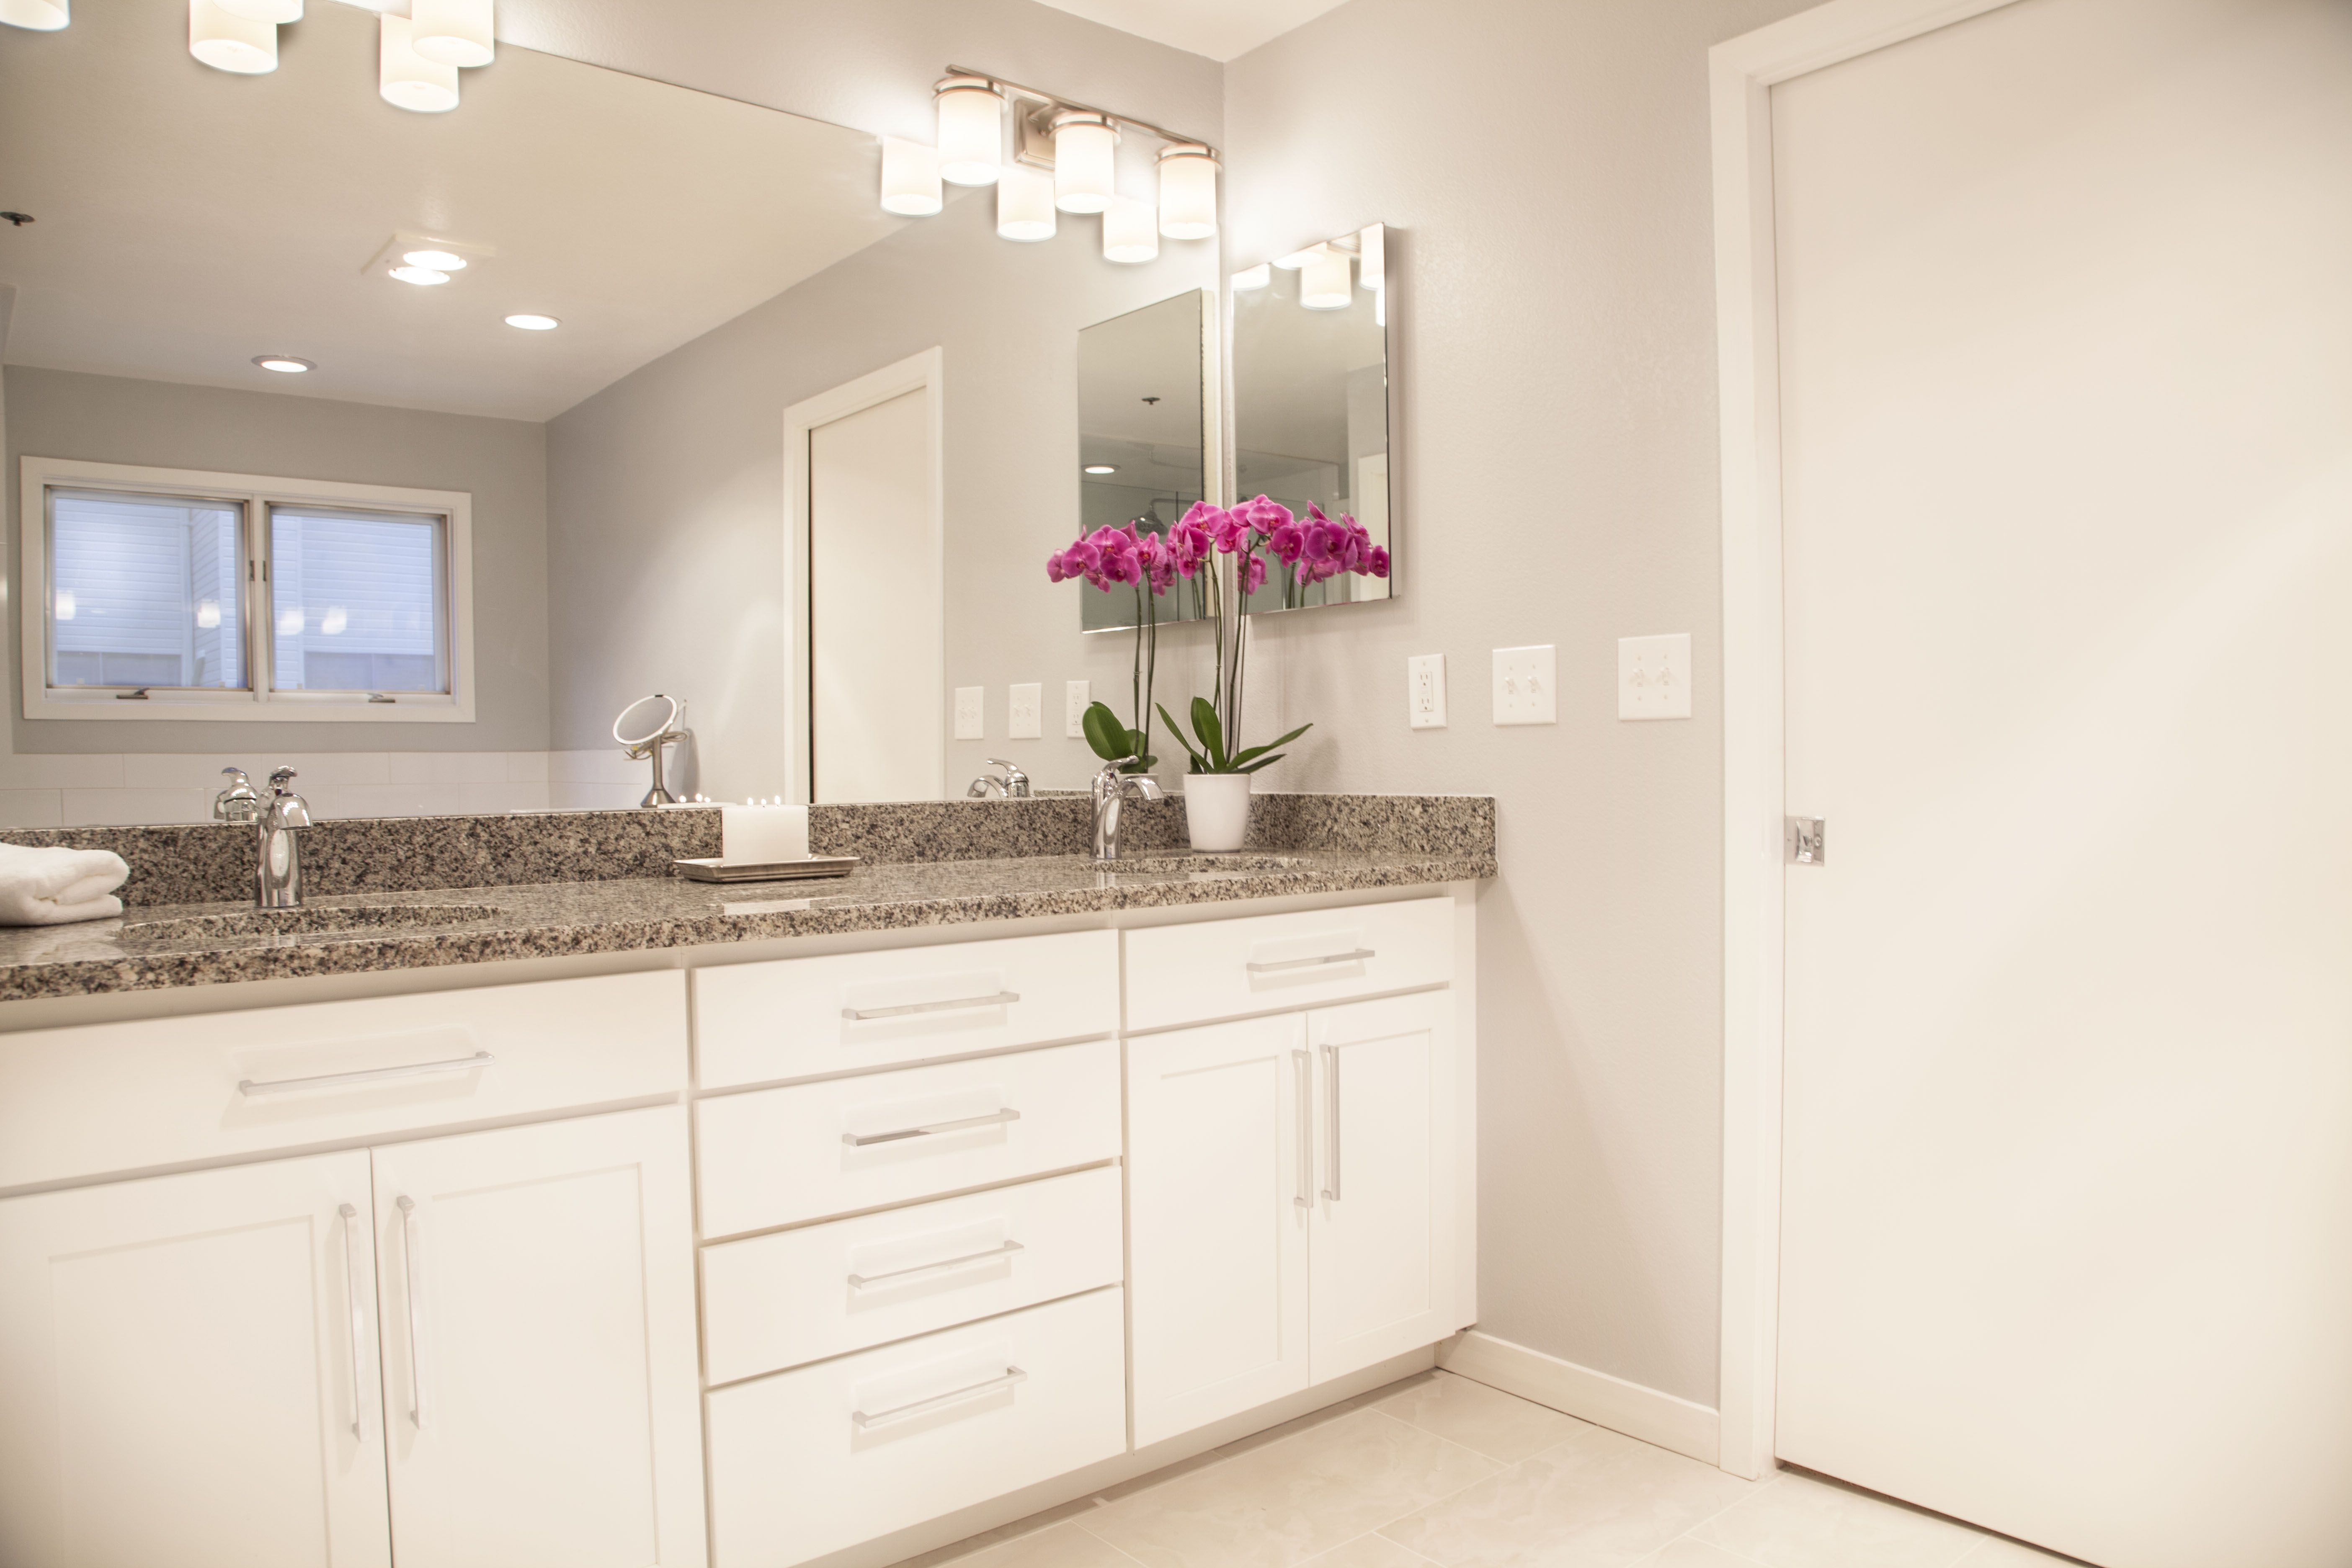 All white bathroom with gray granite and pop of color in the orchid. White cabinetry, white floors, white tile with polished chrome accents. Benjamin Moore Silver Linings on the wall. Wire handle pulls